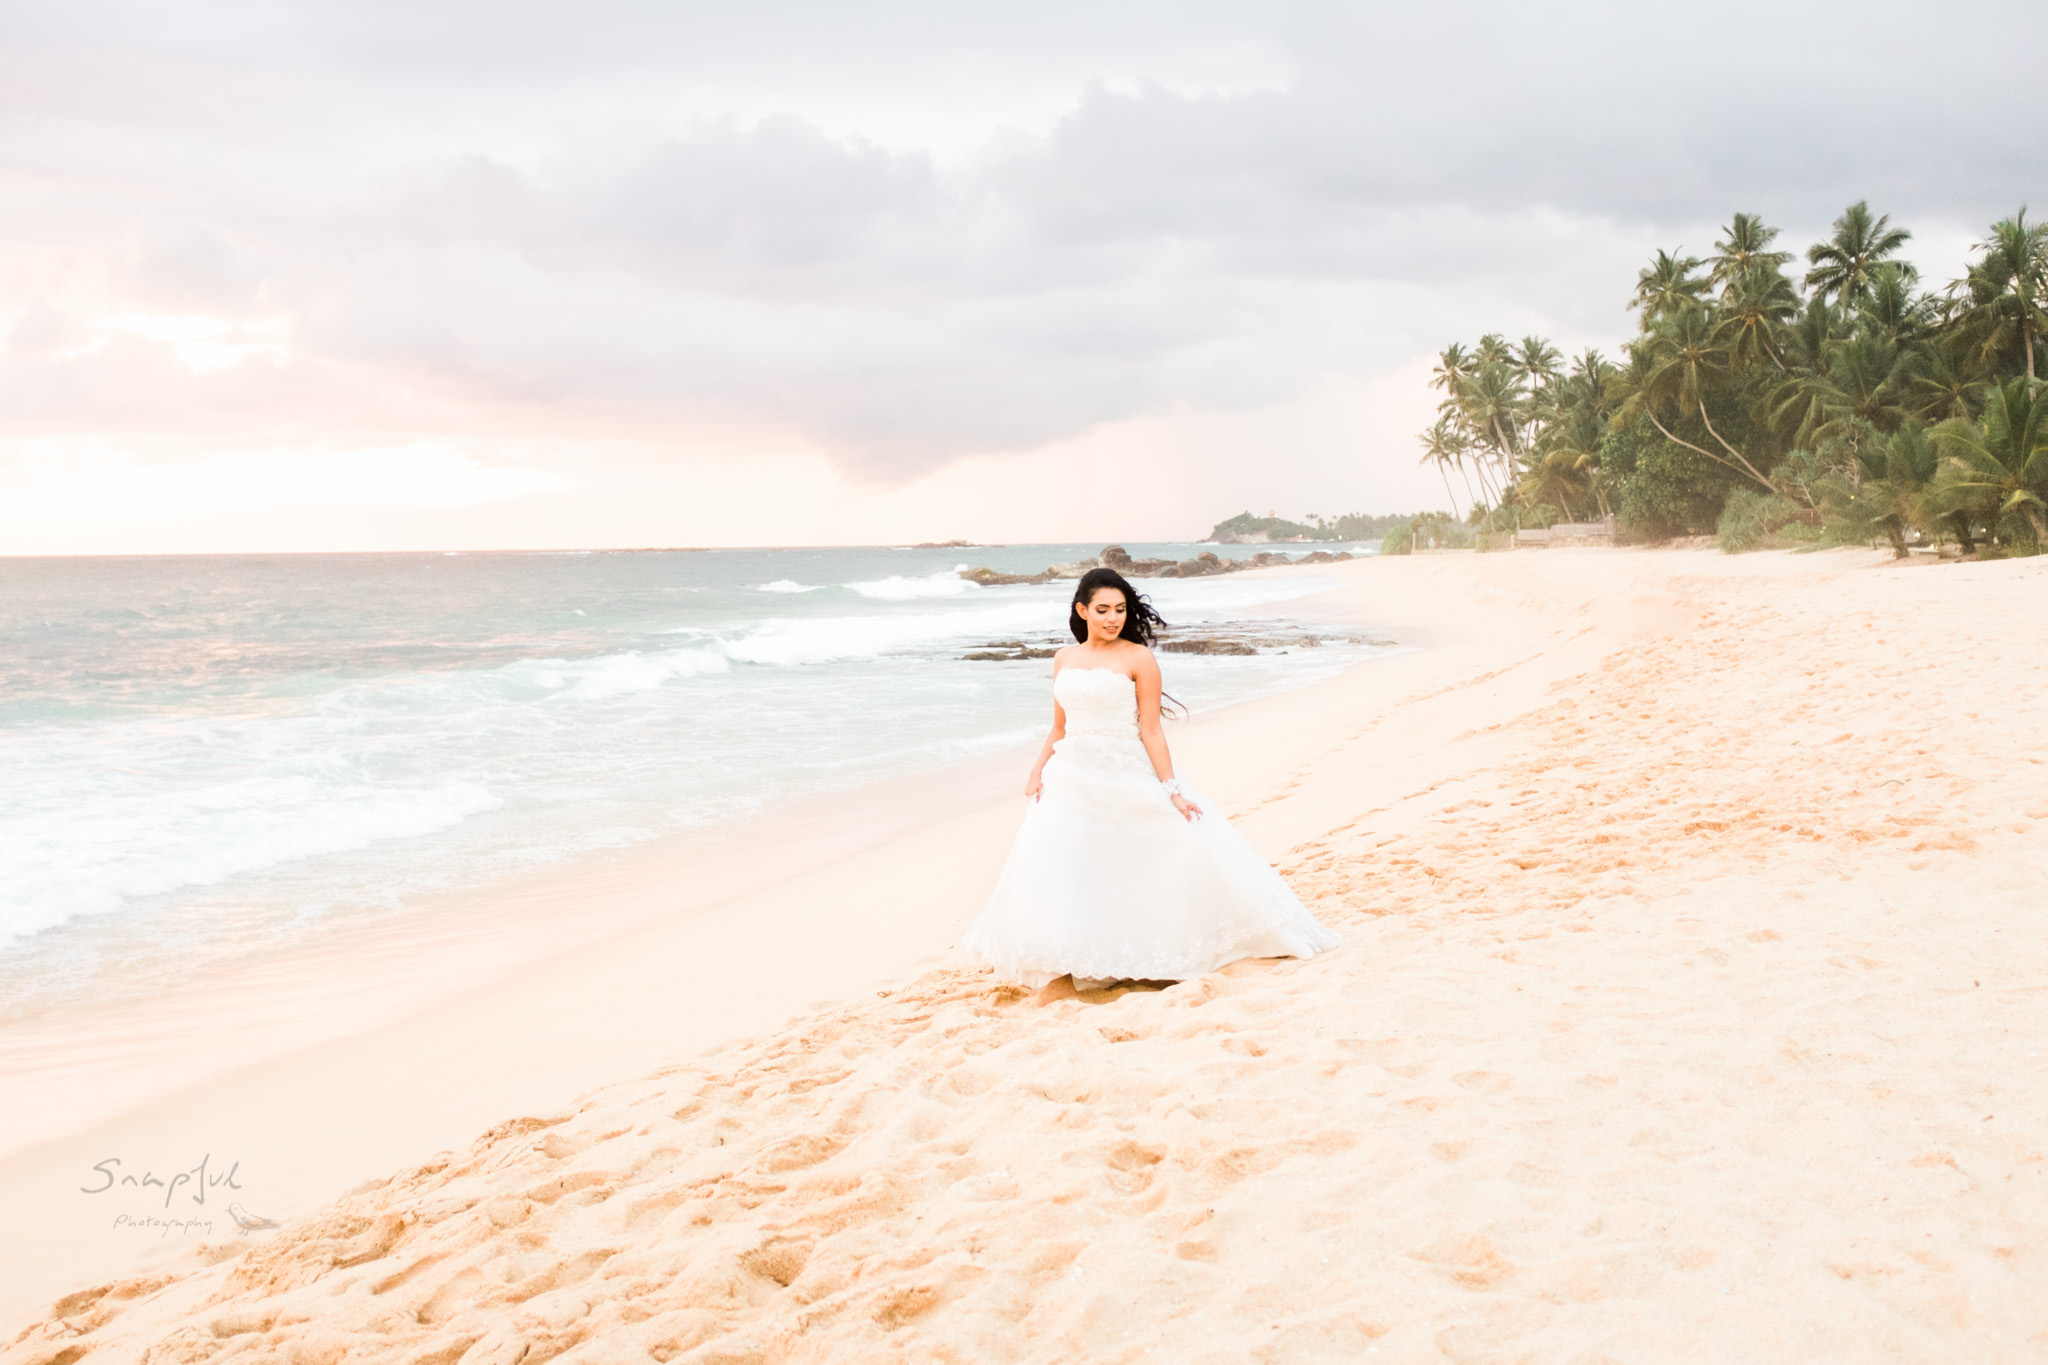 Bride walking on the beach in Sri lanka with palm trees in the background